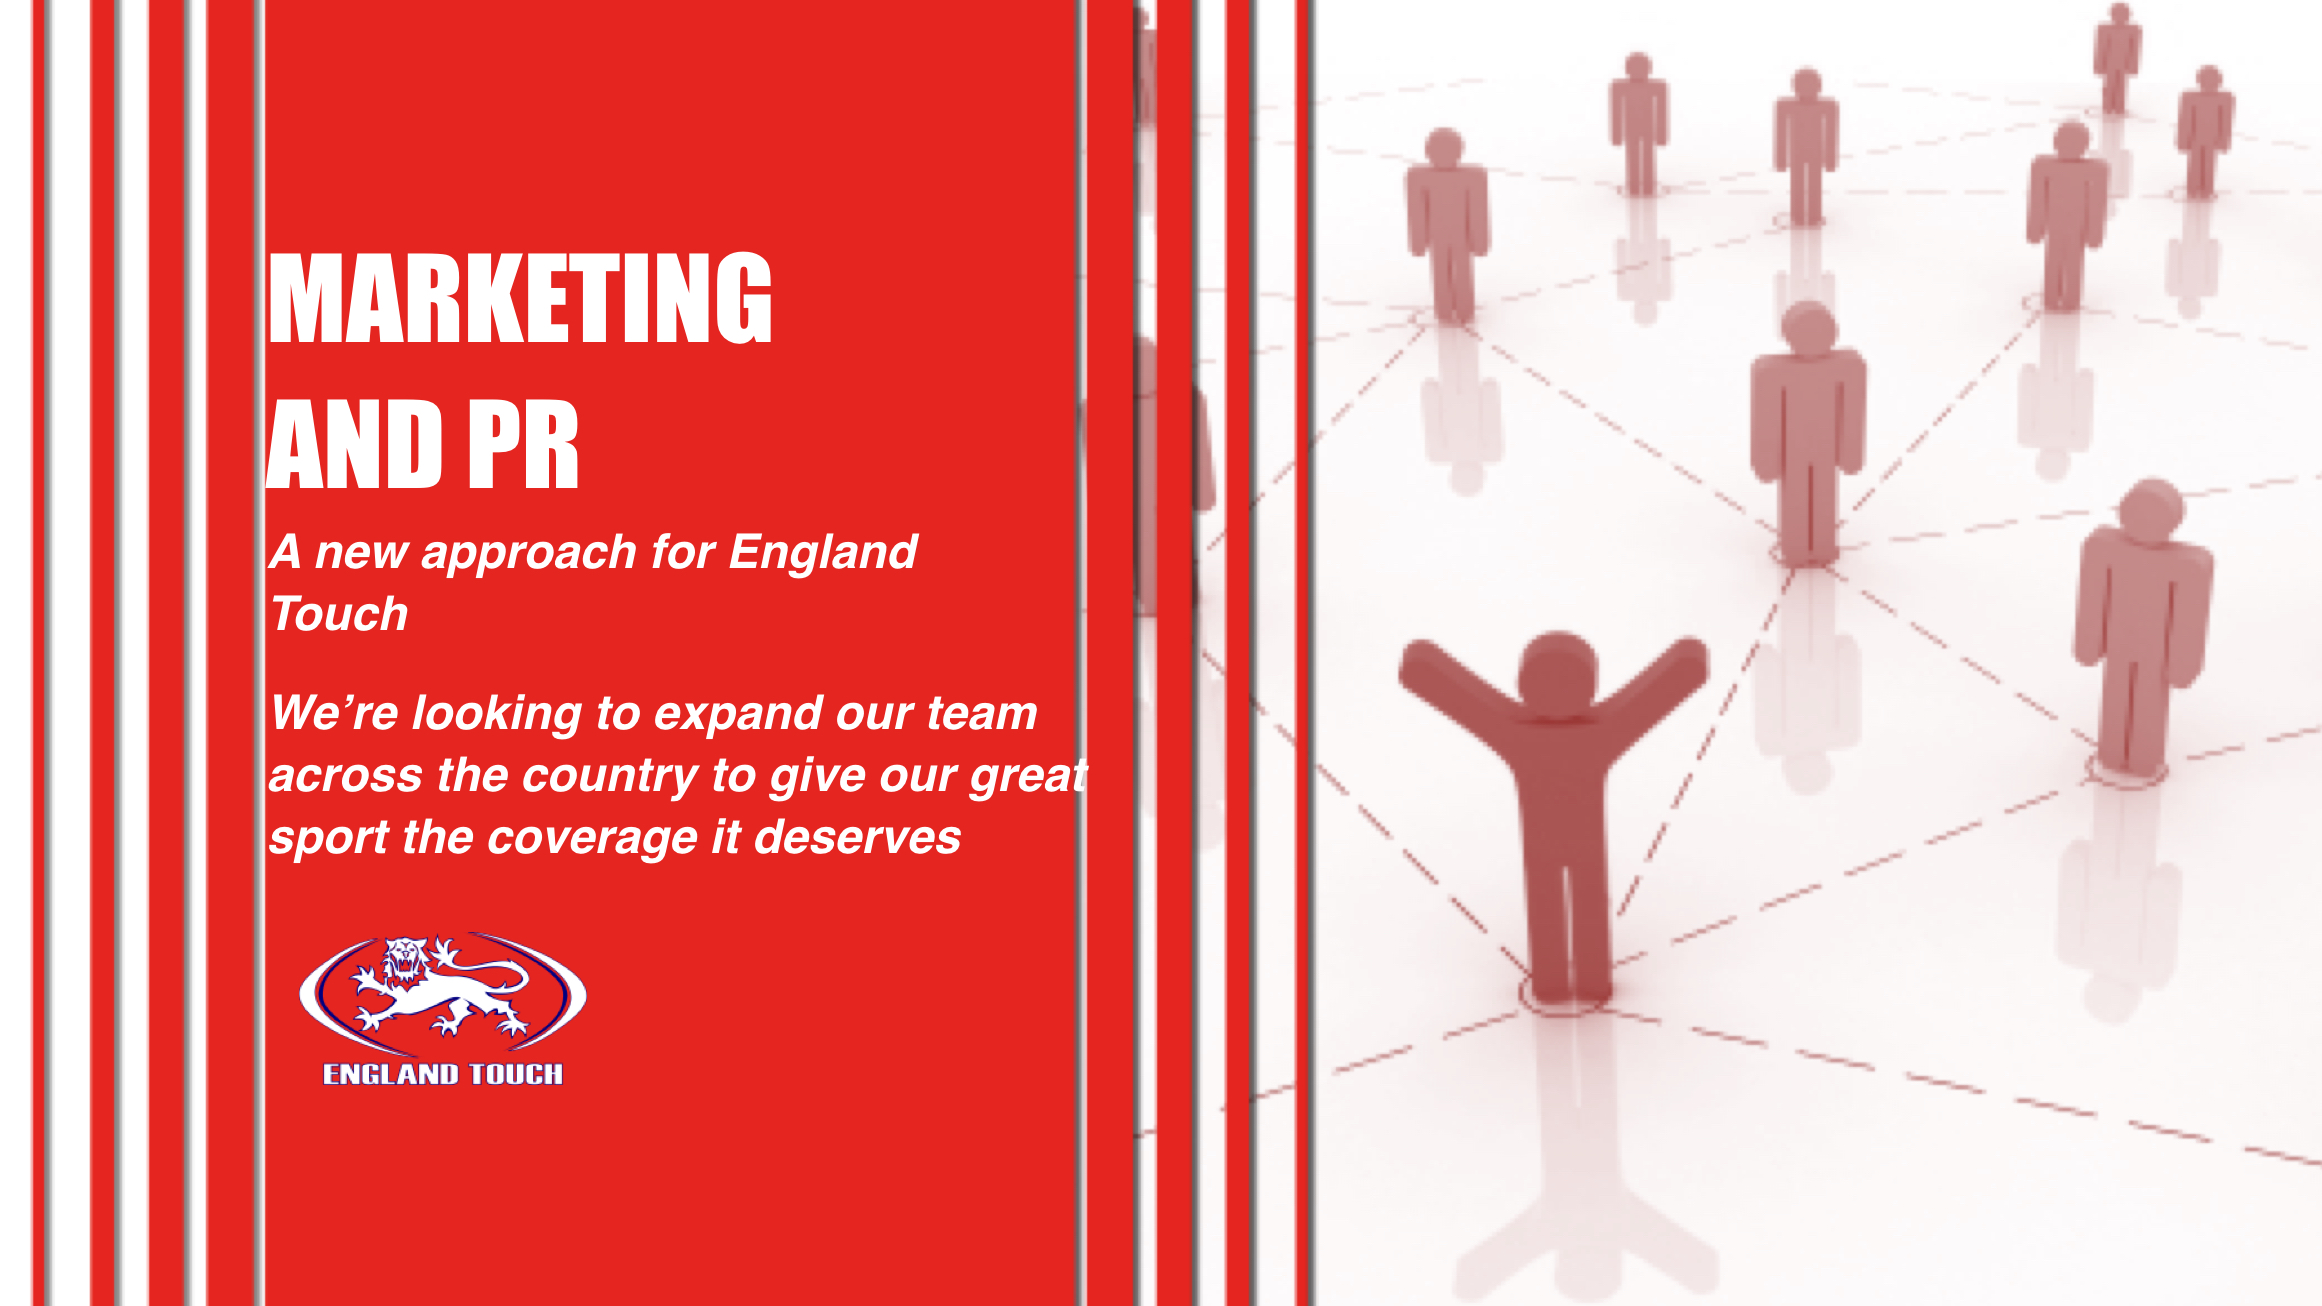 England Touch reshaping marketing and PR in 2017